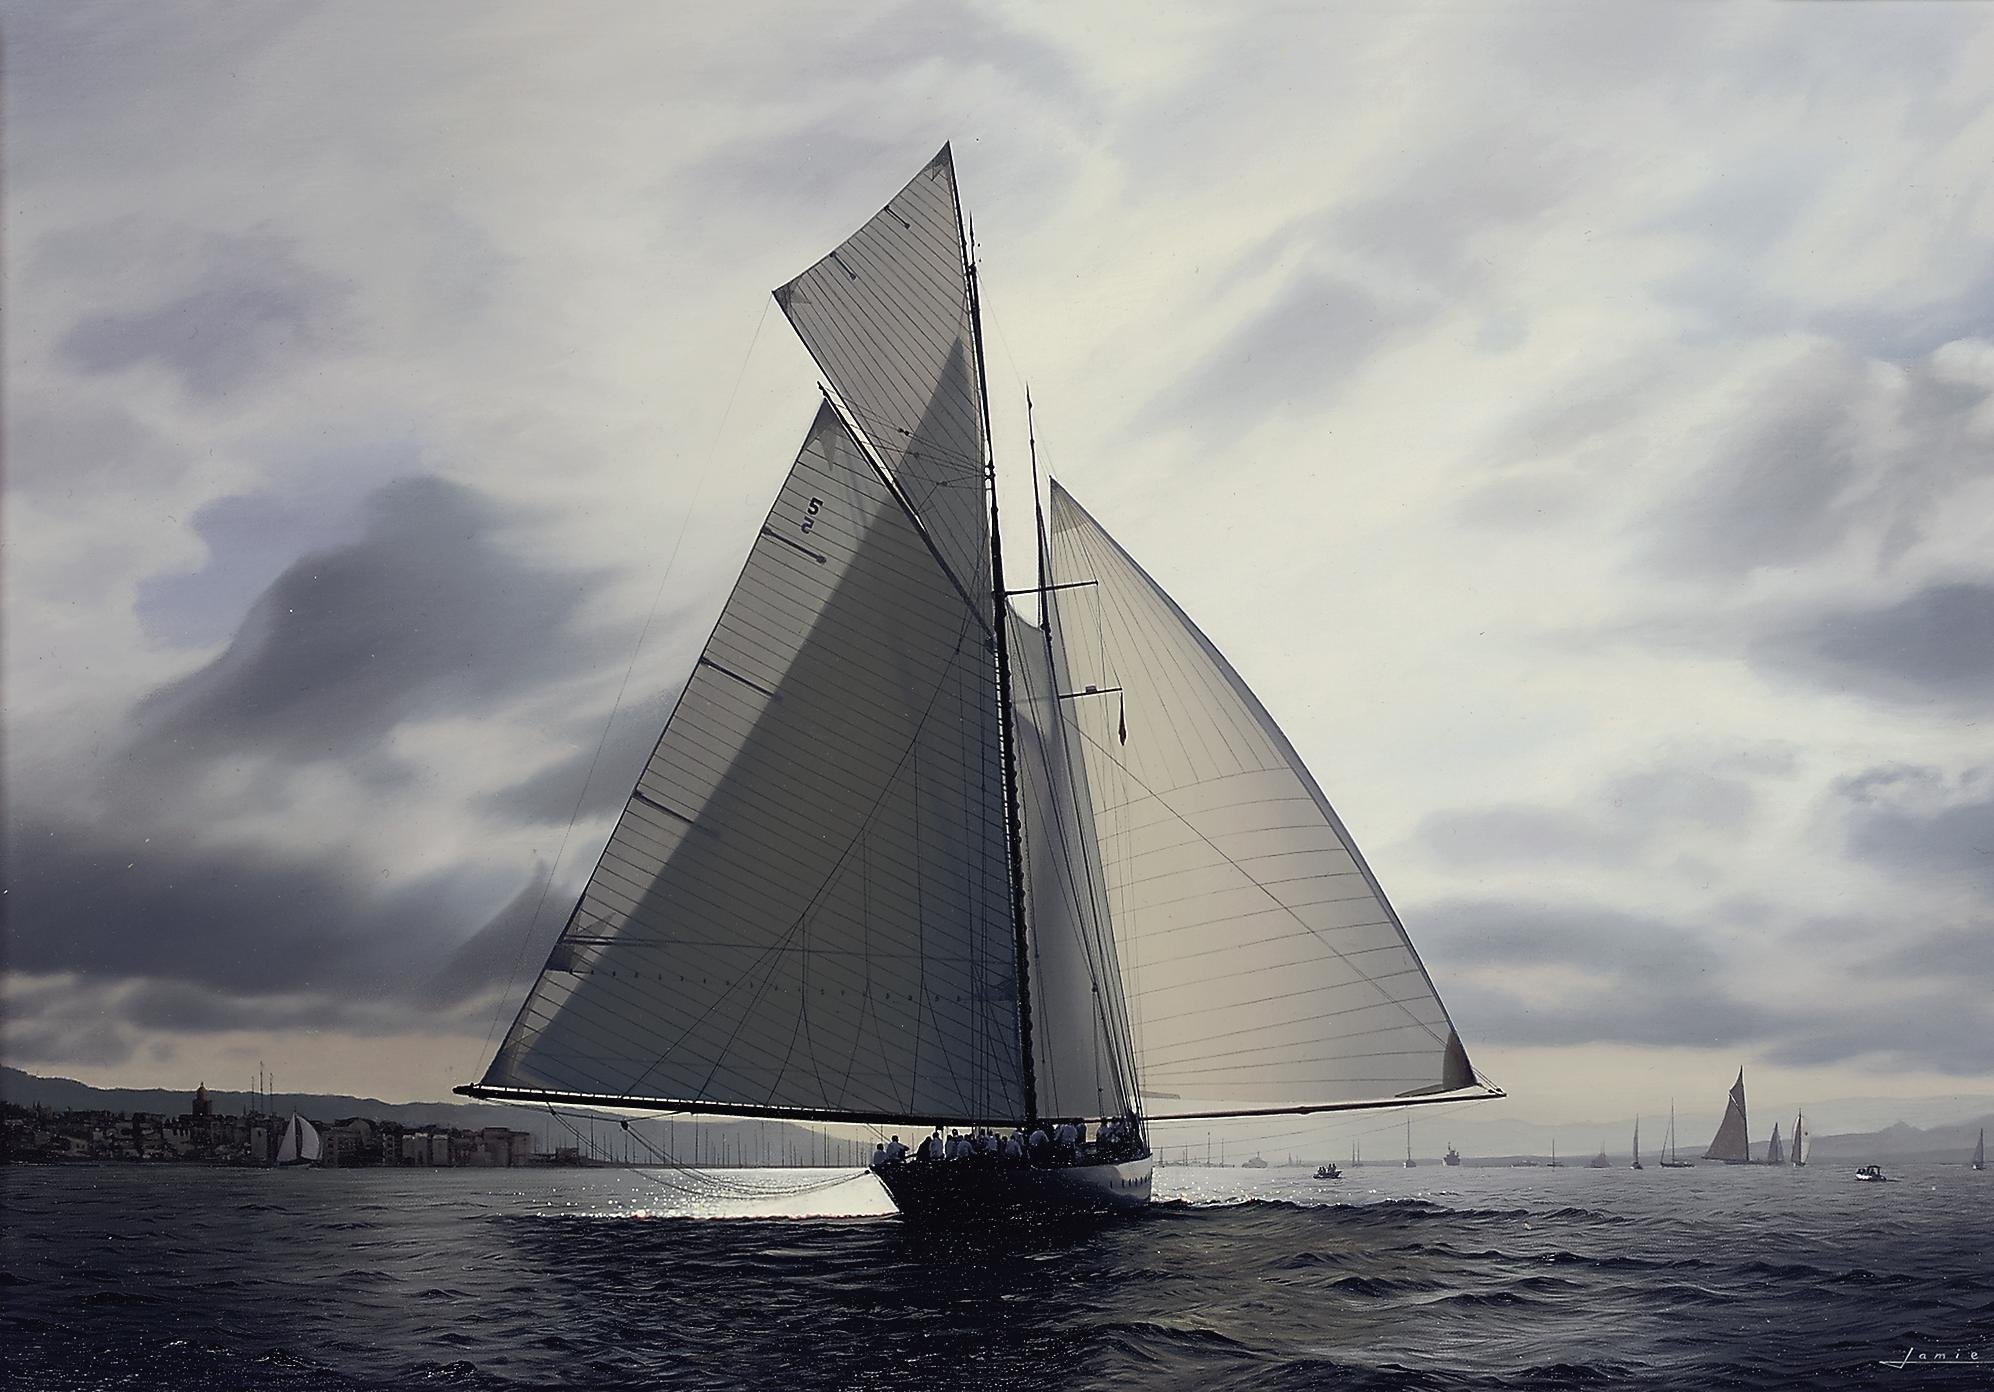 Eleonora ghosting into St. Tropez on Thursday's race of Les Voiles de St. Tropez, 2007